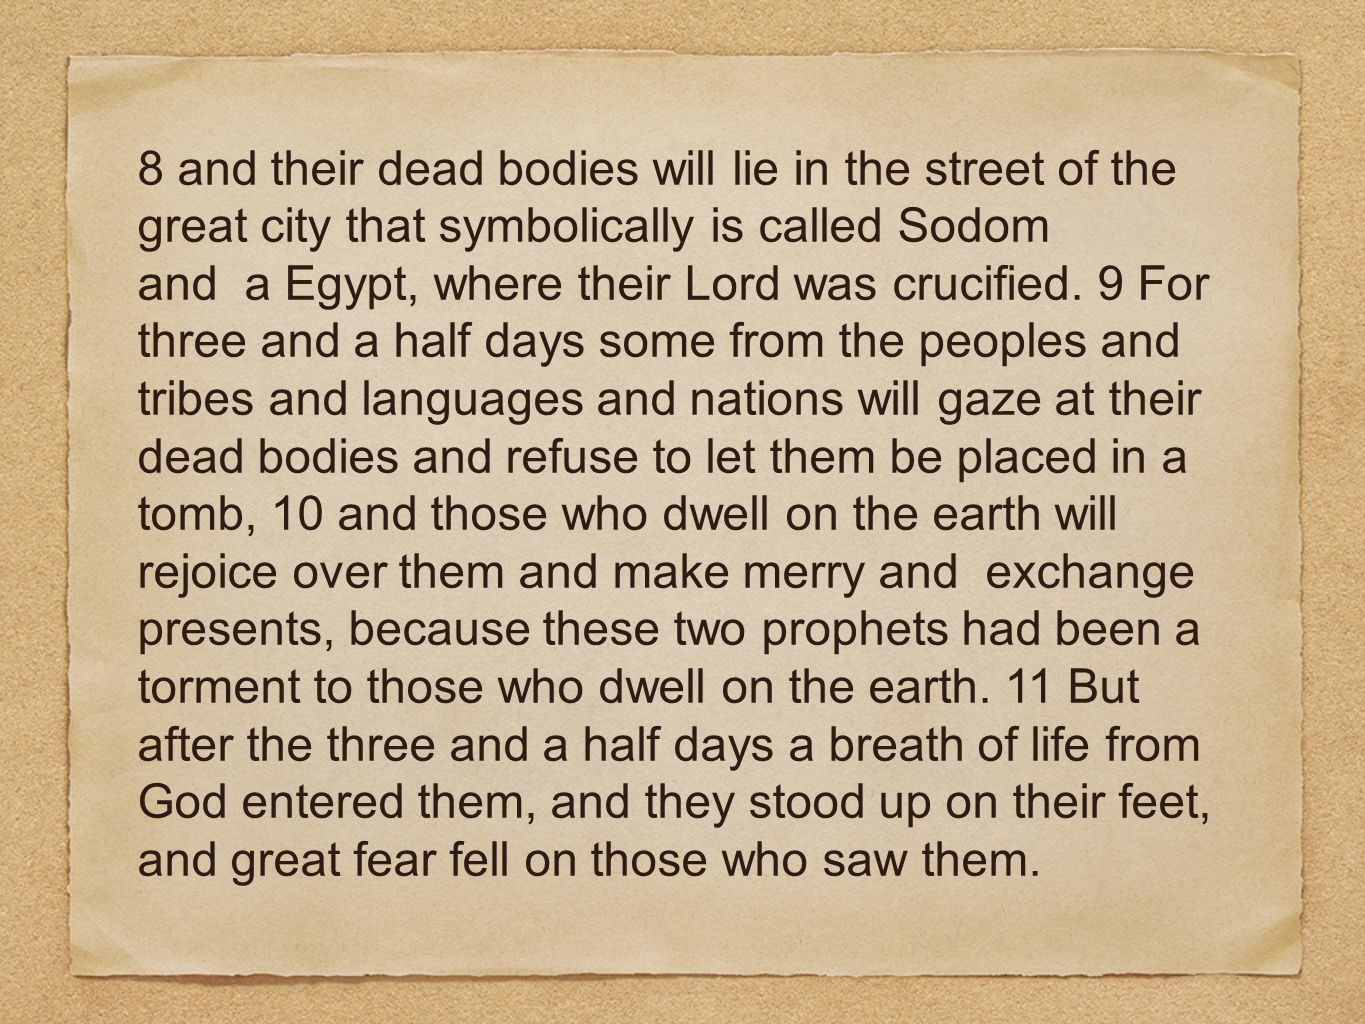 8 and their dead bodies will lie in the street of the great city that symbolically is called Sodom and a Egypt, where their Lord was crucified.